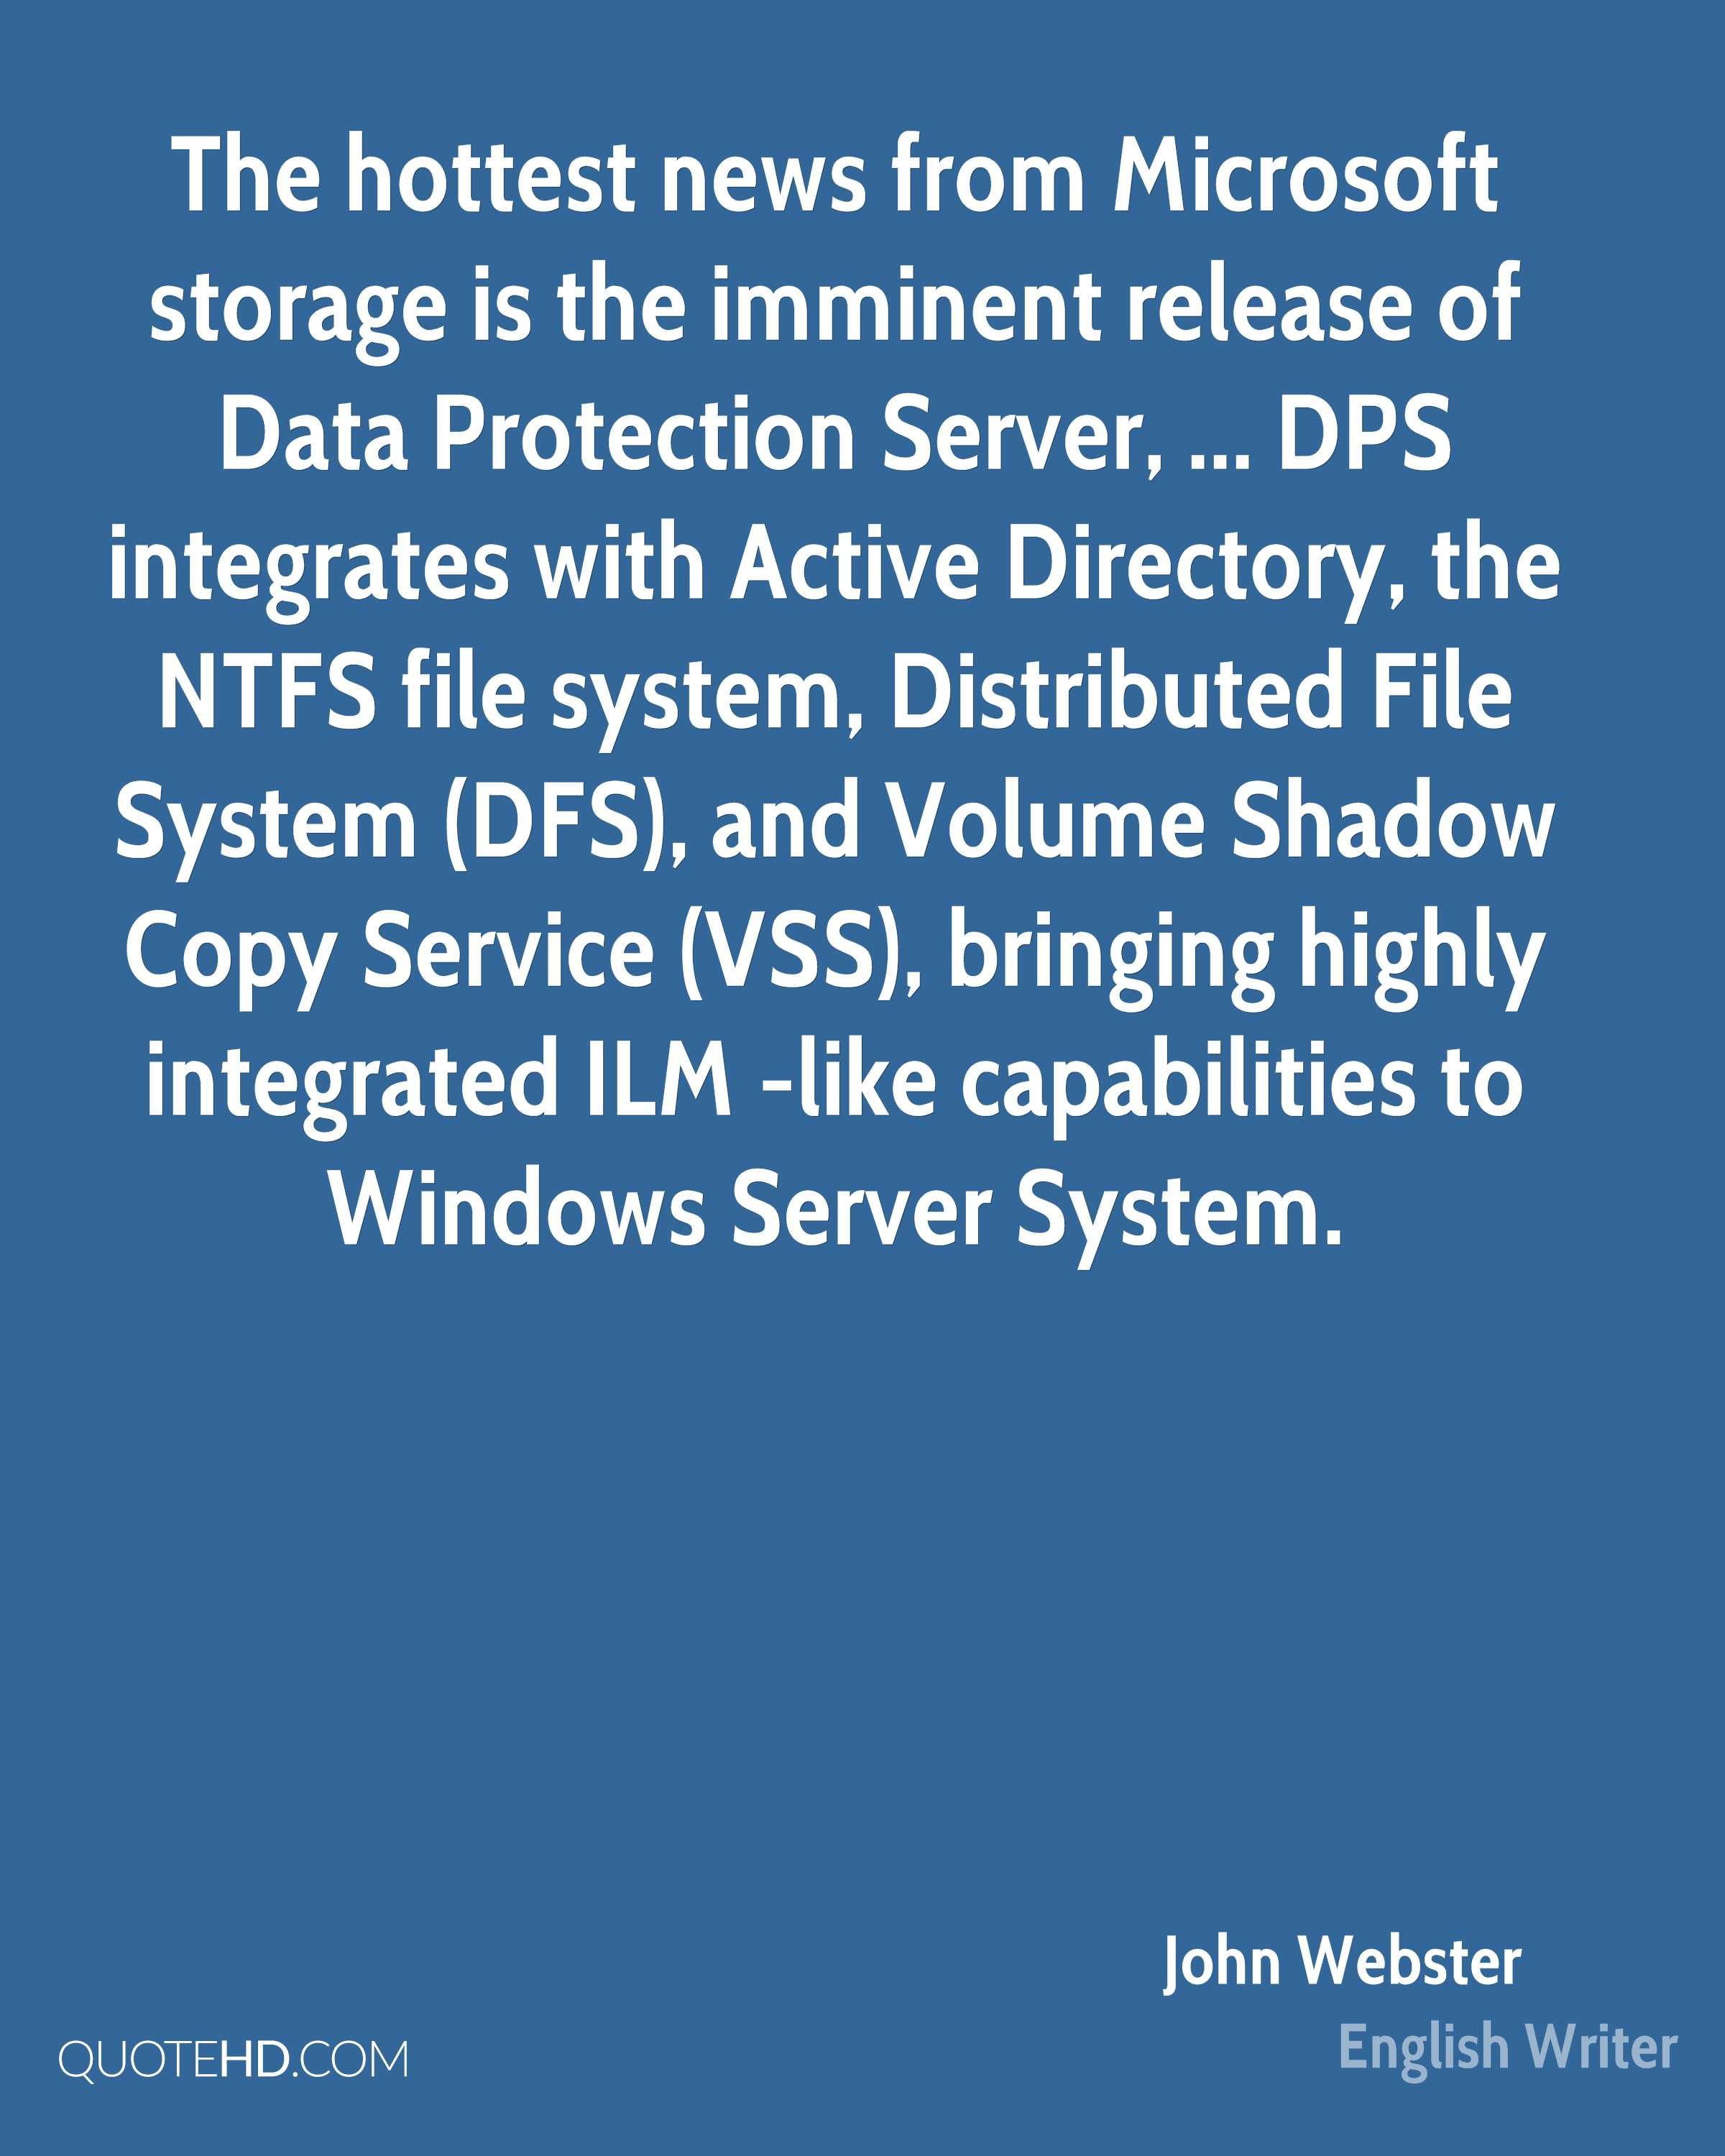 The hottest news from Microsoft storage is the imminent release of Data Protection Server, ... DPS integrates with Active Directory, the NTFS file system, Distributed File System (DFS), and Volume Shadow Copy Service (VSS), bringing highly integrated ILM -like capabilities to Windows Server System.